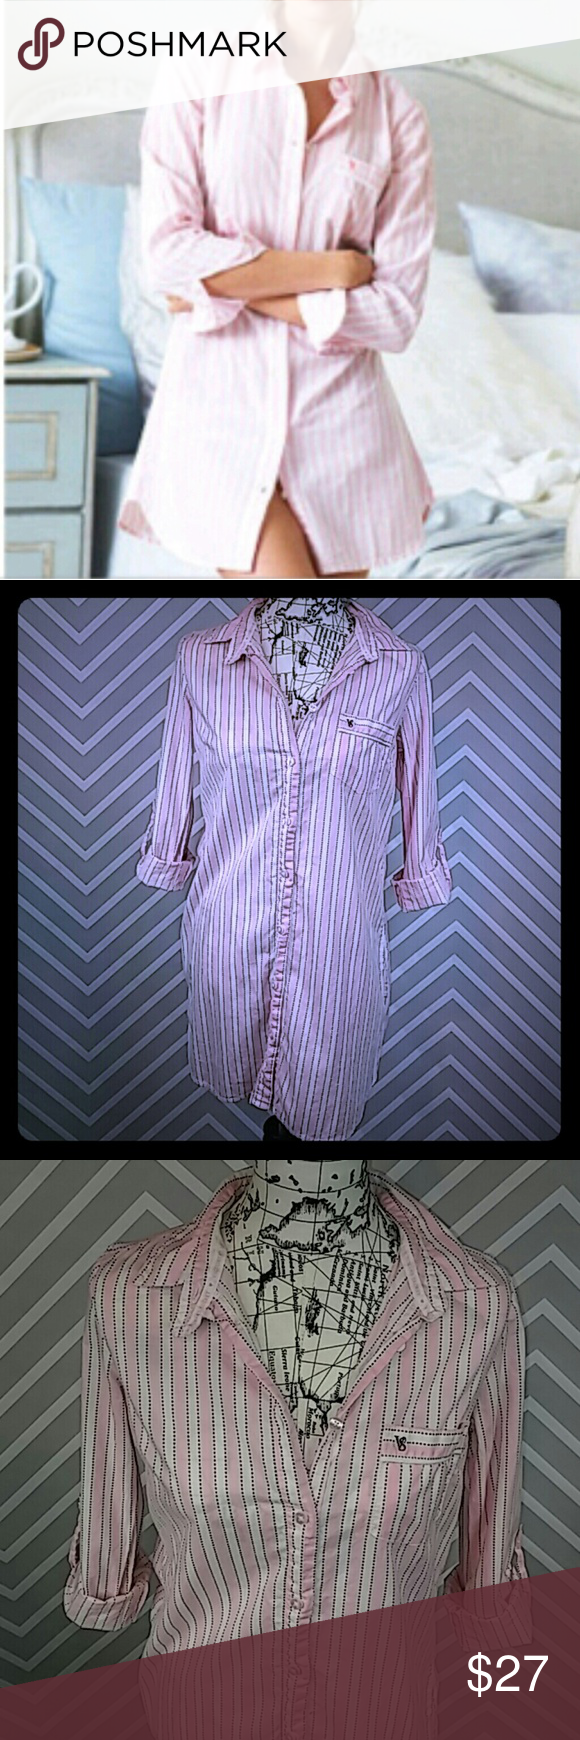 """Victoria's Secret Cotton Striped Sleep Shirt Reasonable offers always considered on items over $15. Bundle discount available. No trades. Don't let this ship lonely, bundle and save!  Like new! Only worn once! Pretty pink and white vertical striped sleep shirt. Button down, front pocket and collar. Mid thigh length and optional roll up and button sleeves. Victoria's Secret embossed buttons and black logo embroidery on pocket. Stretch fabric. Bust 19"""" flat, 34.5"""" length, 17"""" inseam. 100%…"""